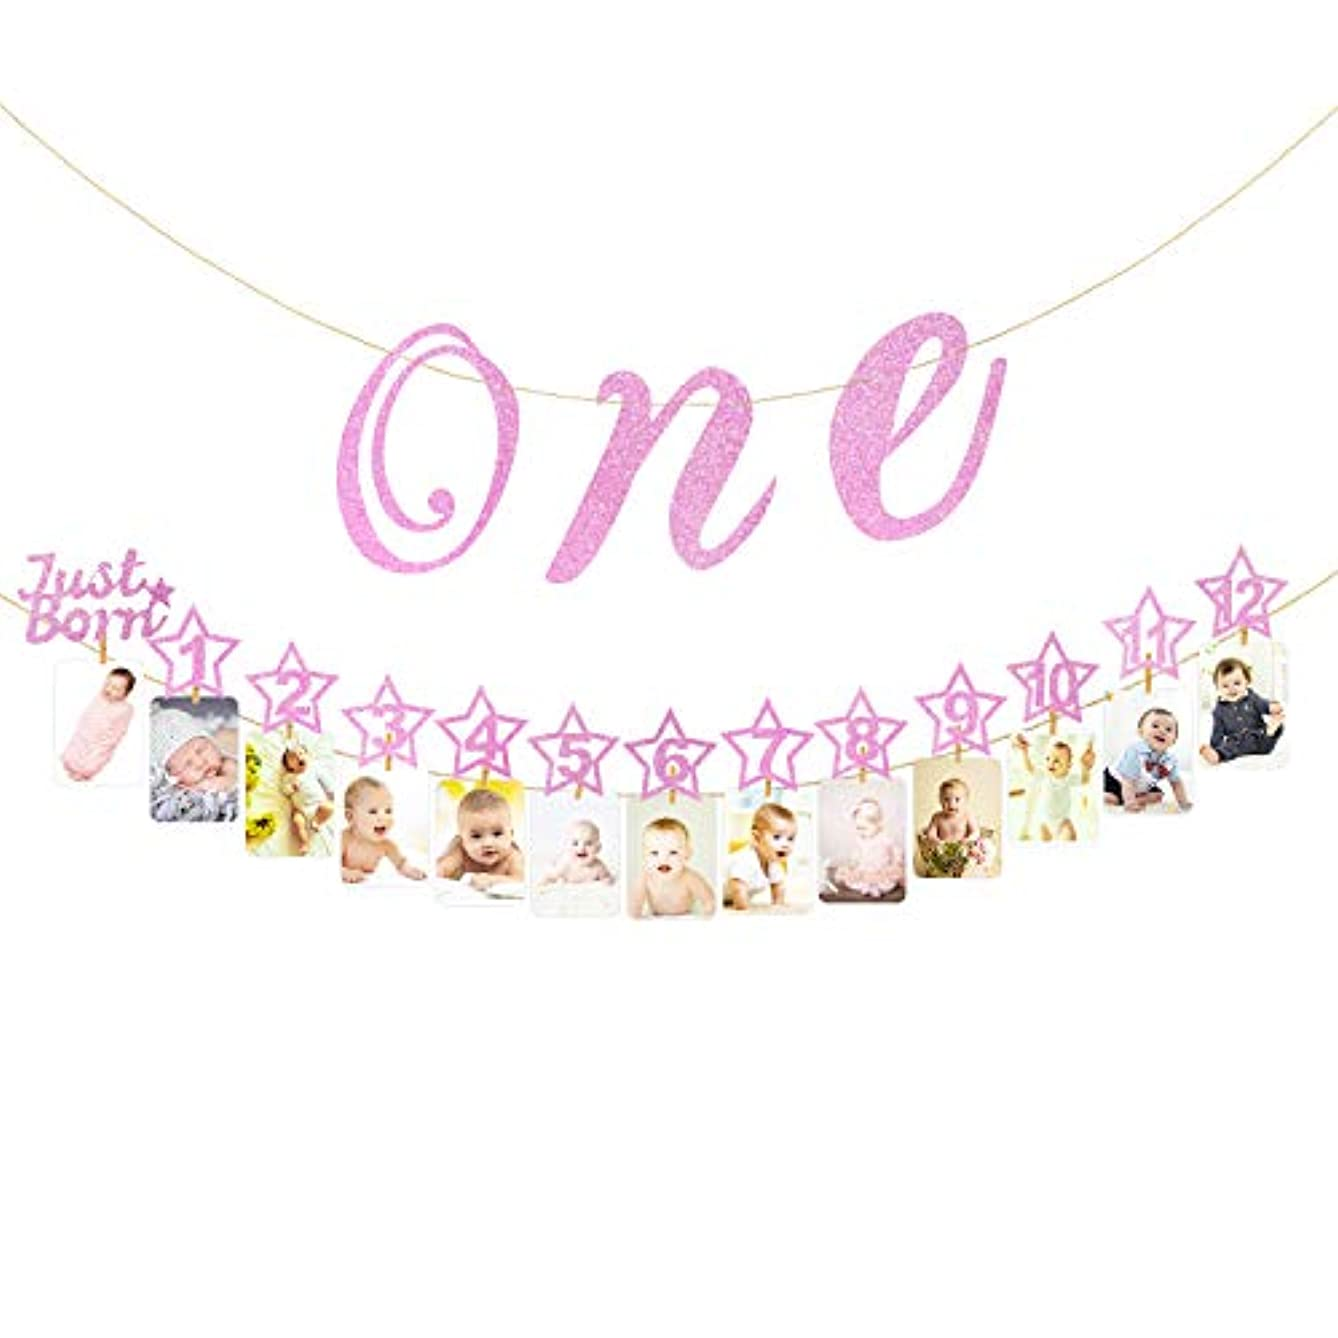 Hifot 1st Birthday Photo Banner with High Chair Glitter Gold ONE Decoration, Monthly Milestone Baby Photo Prop Bunting for Newborn to 12 Months First Birthday Party Supplies Decor Set (Pink)